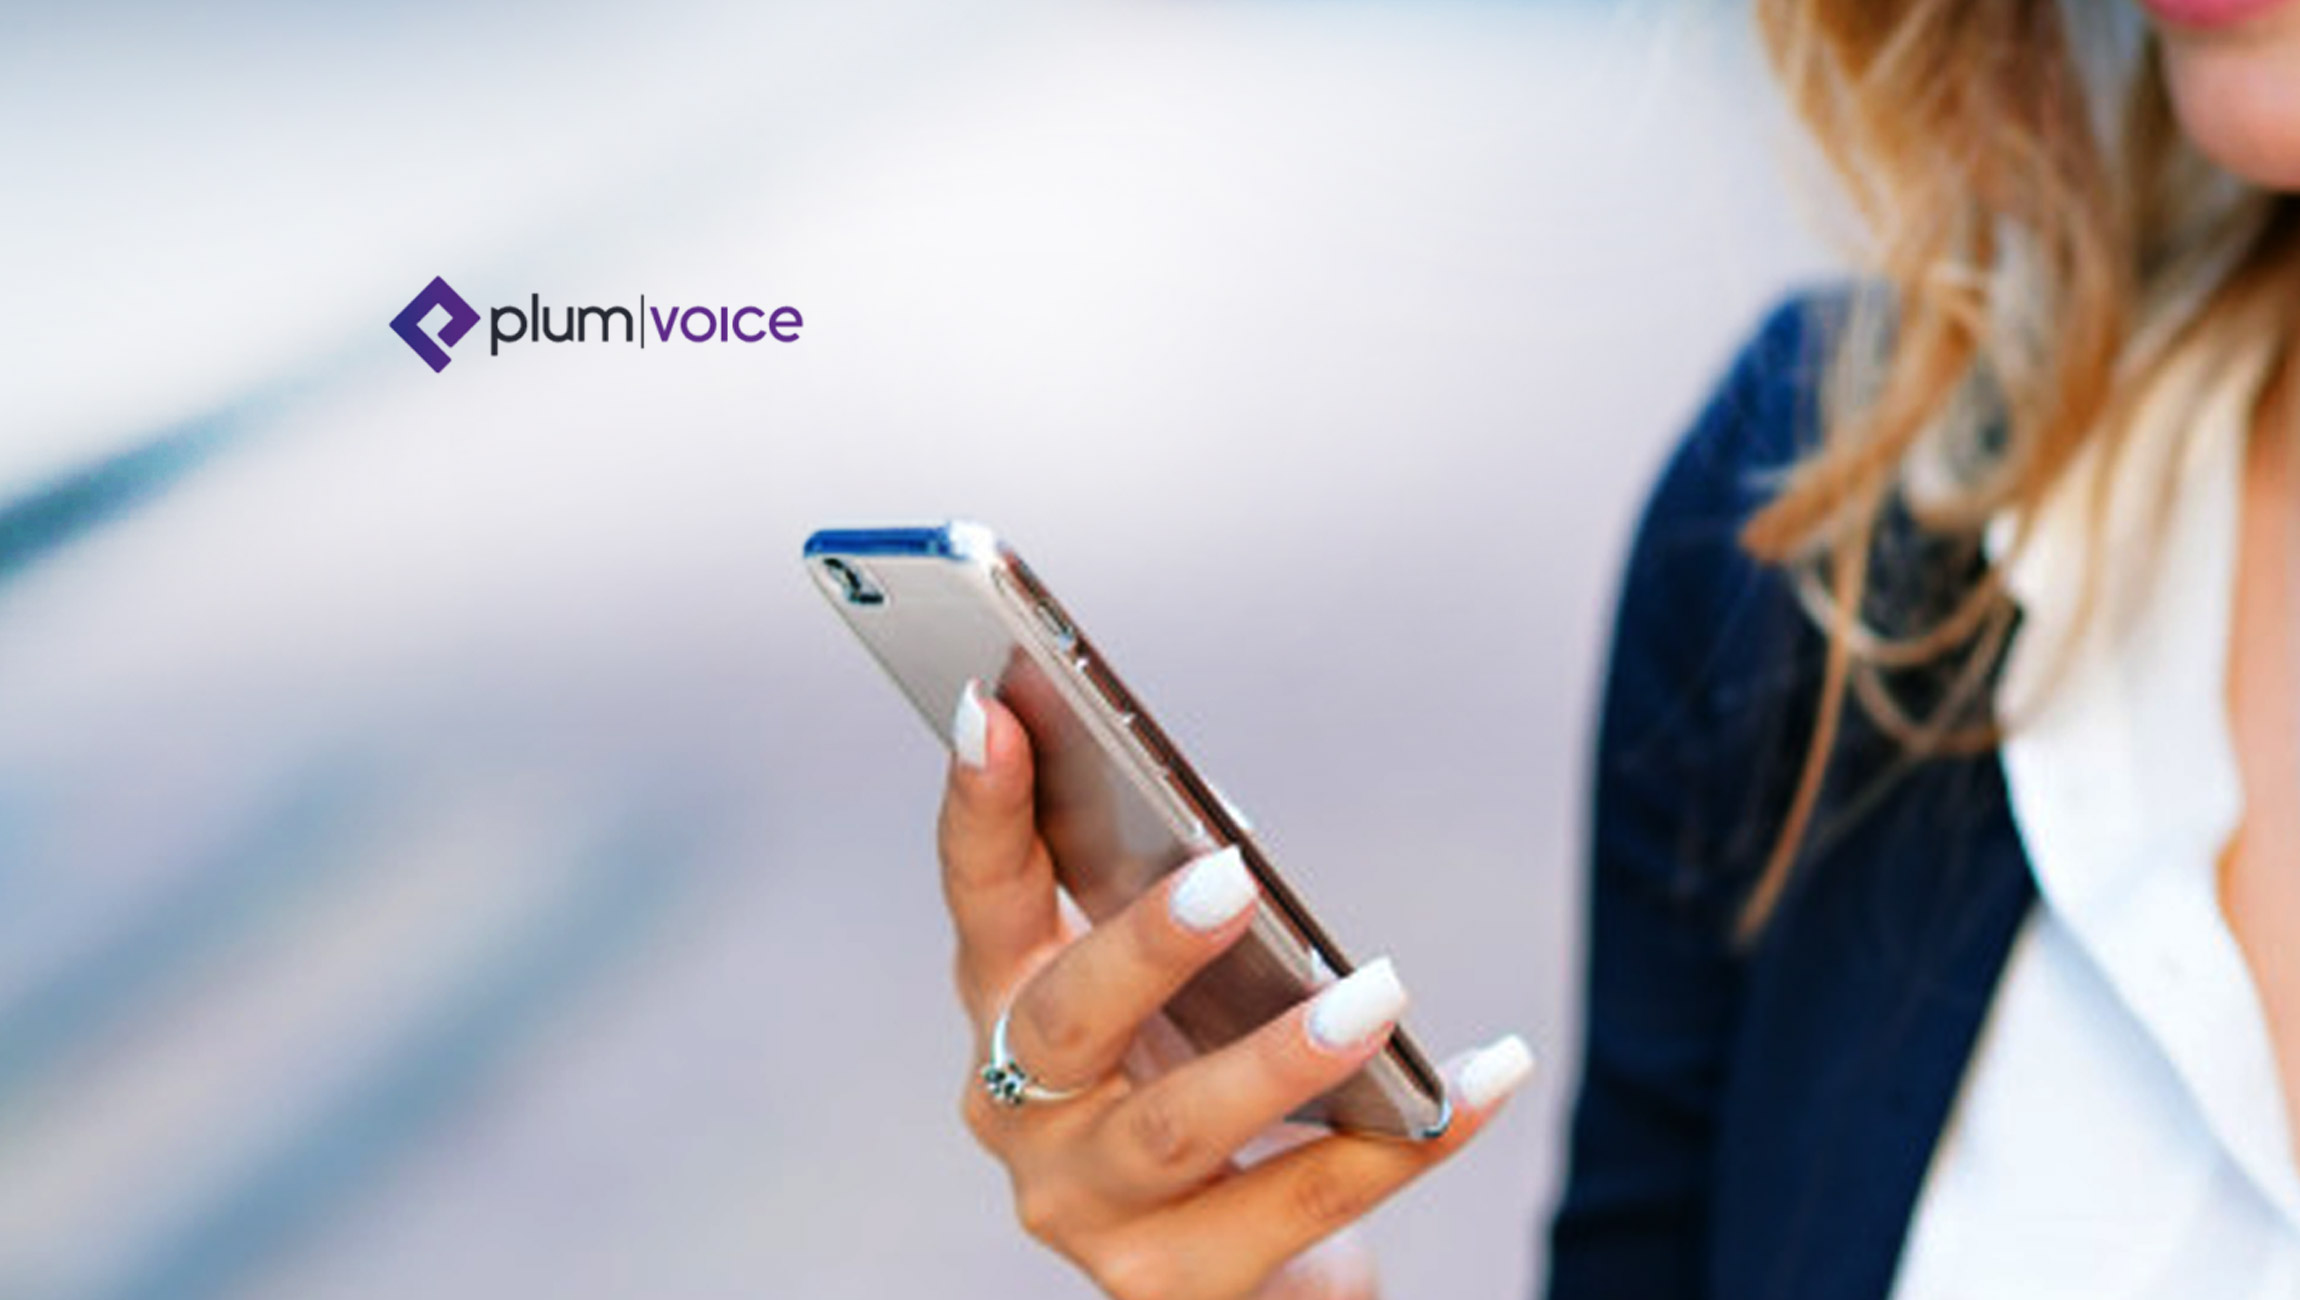 Plum Voice Launches SecureAssistant, A Virtual Payment Agent That Conferences Into Calls to Descope Contact Centers from PCI-DSS